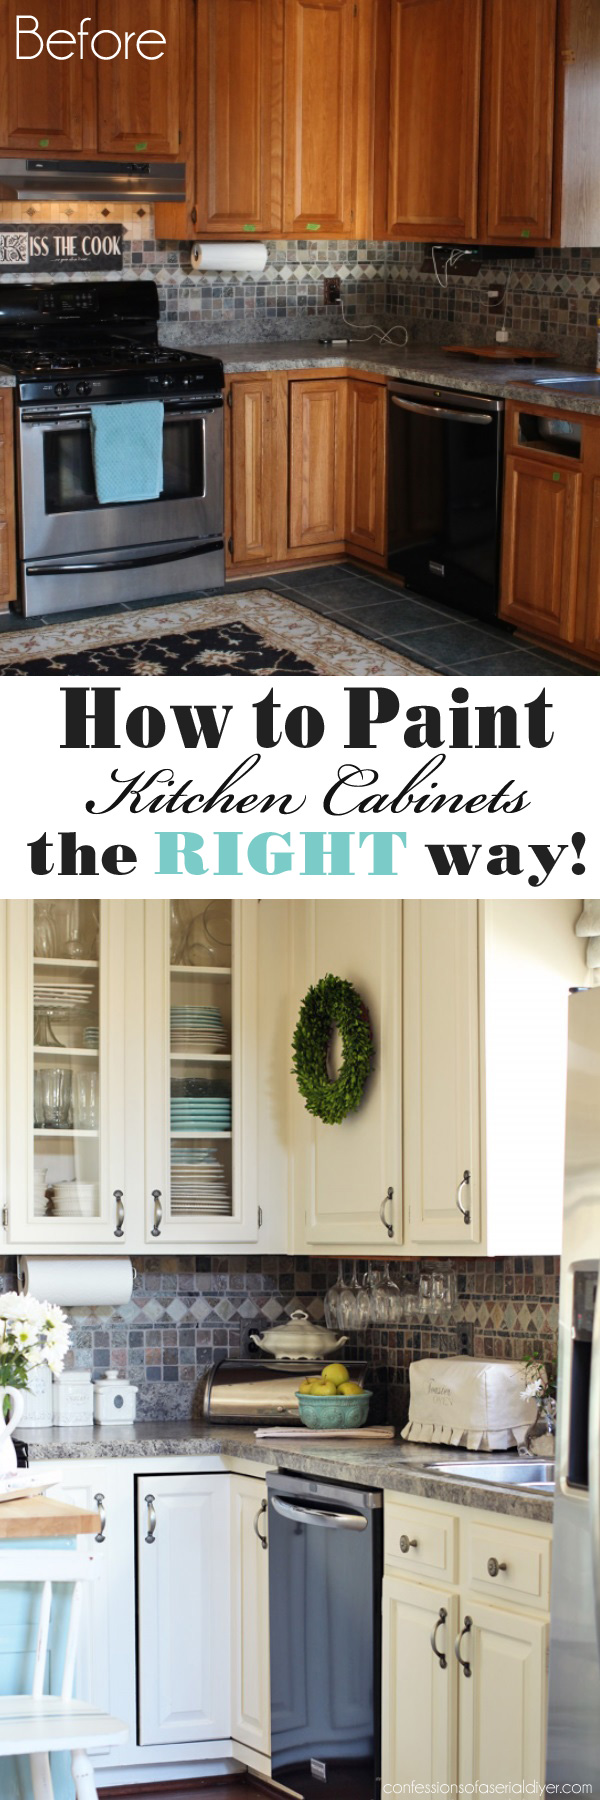 Best Kitchen Gallery: How To Paint Kitchen Cabi S A Step By Step Guide Confessions of Behr Paint For Kitchen Cabinets No Sanding on rachelxblog.com